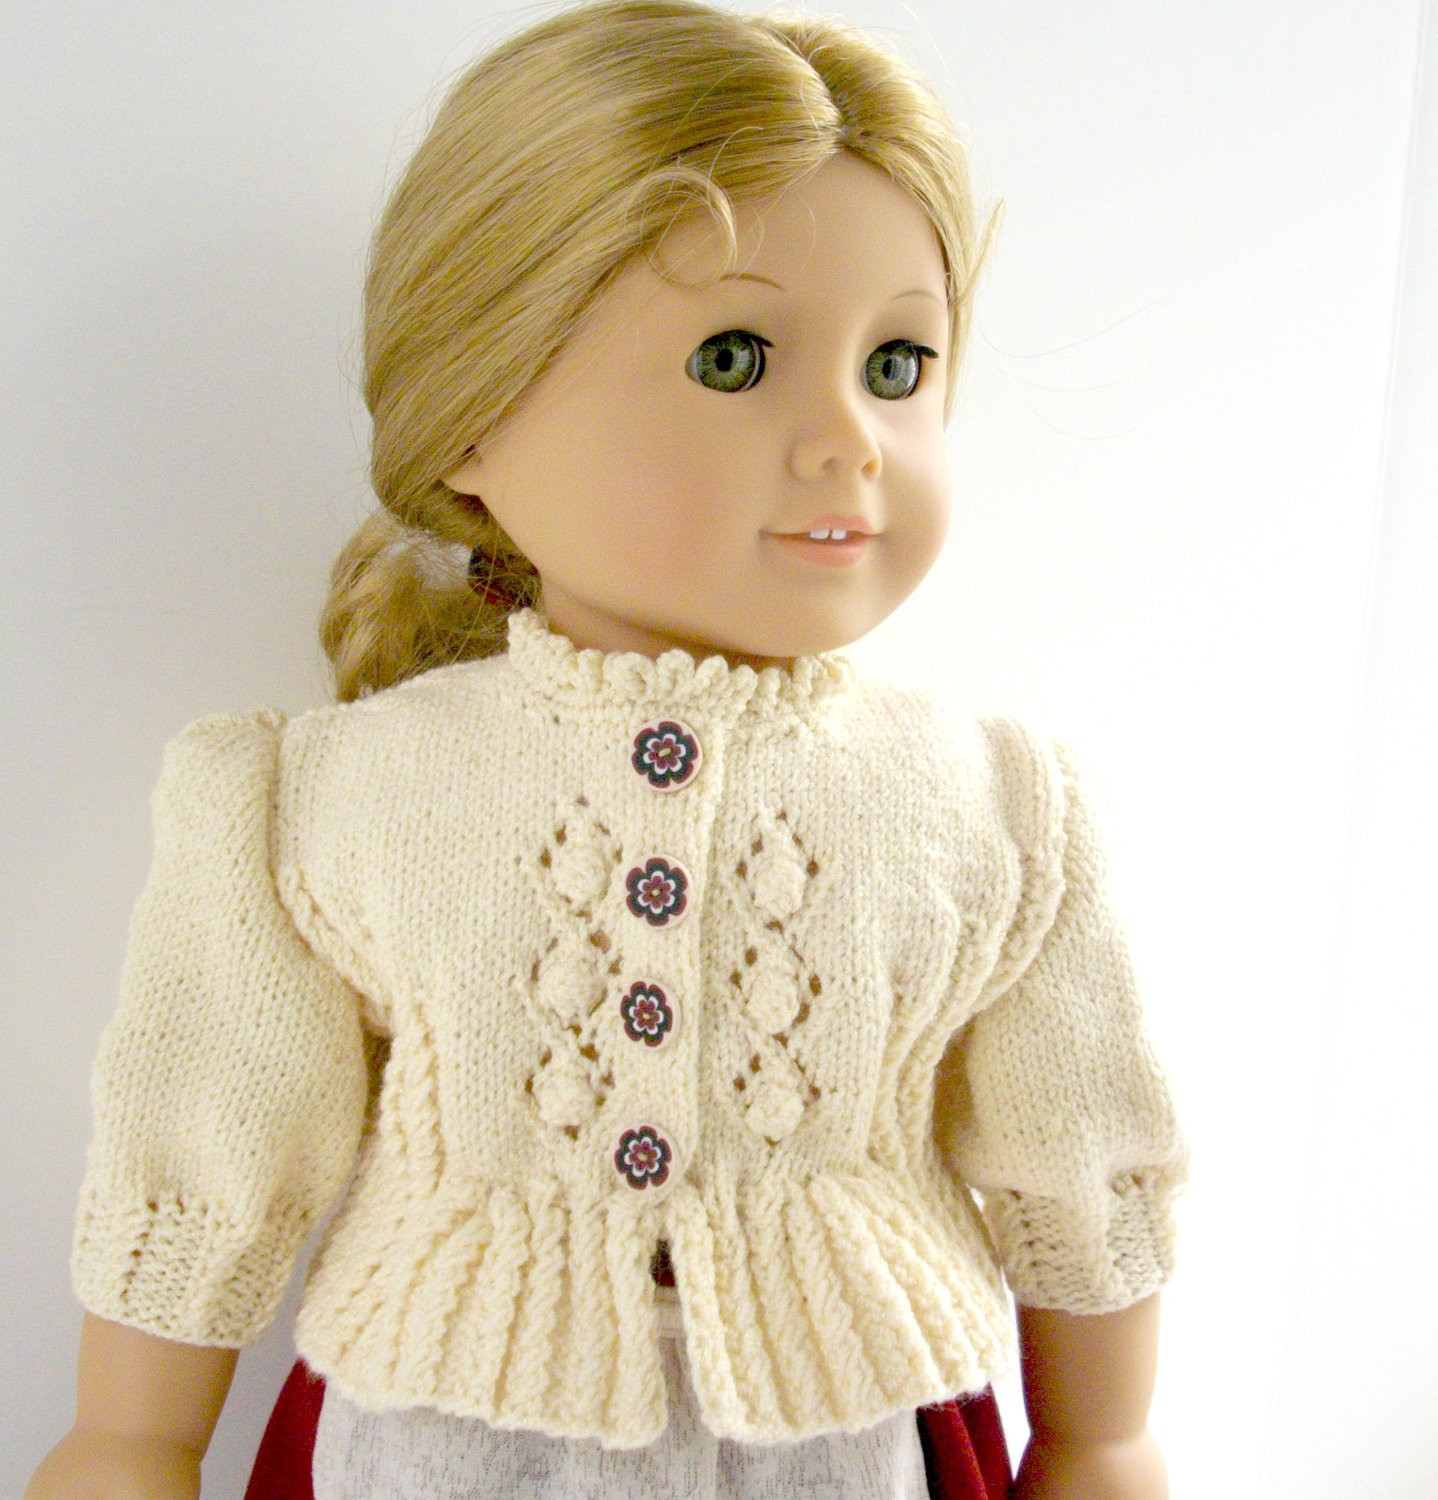 Doll Patterns Fresh American Girl Doll 18 Gotz Doll Knitting Pattern Folk Of Doll Patterns Unique Knitting Patterns Dolls Clothes